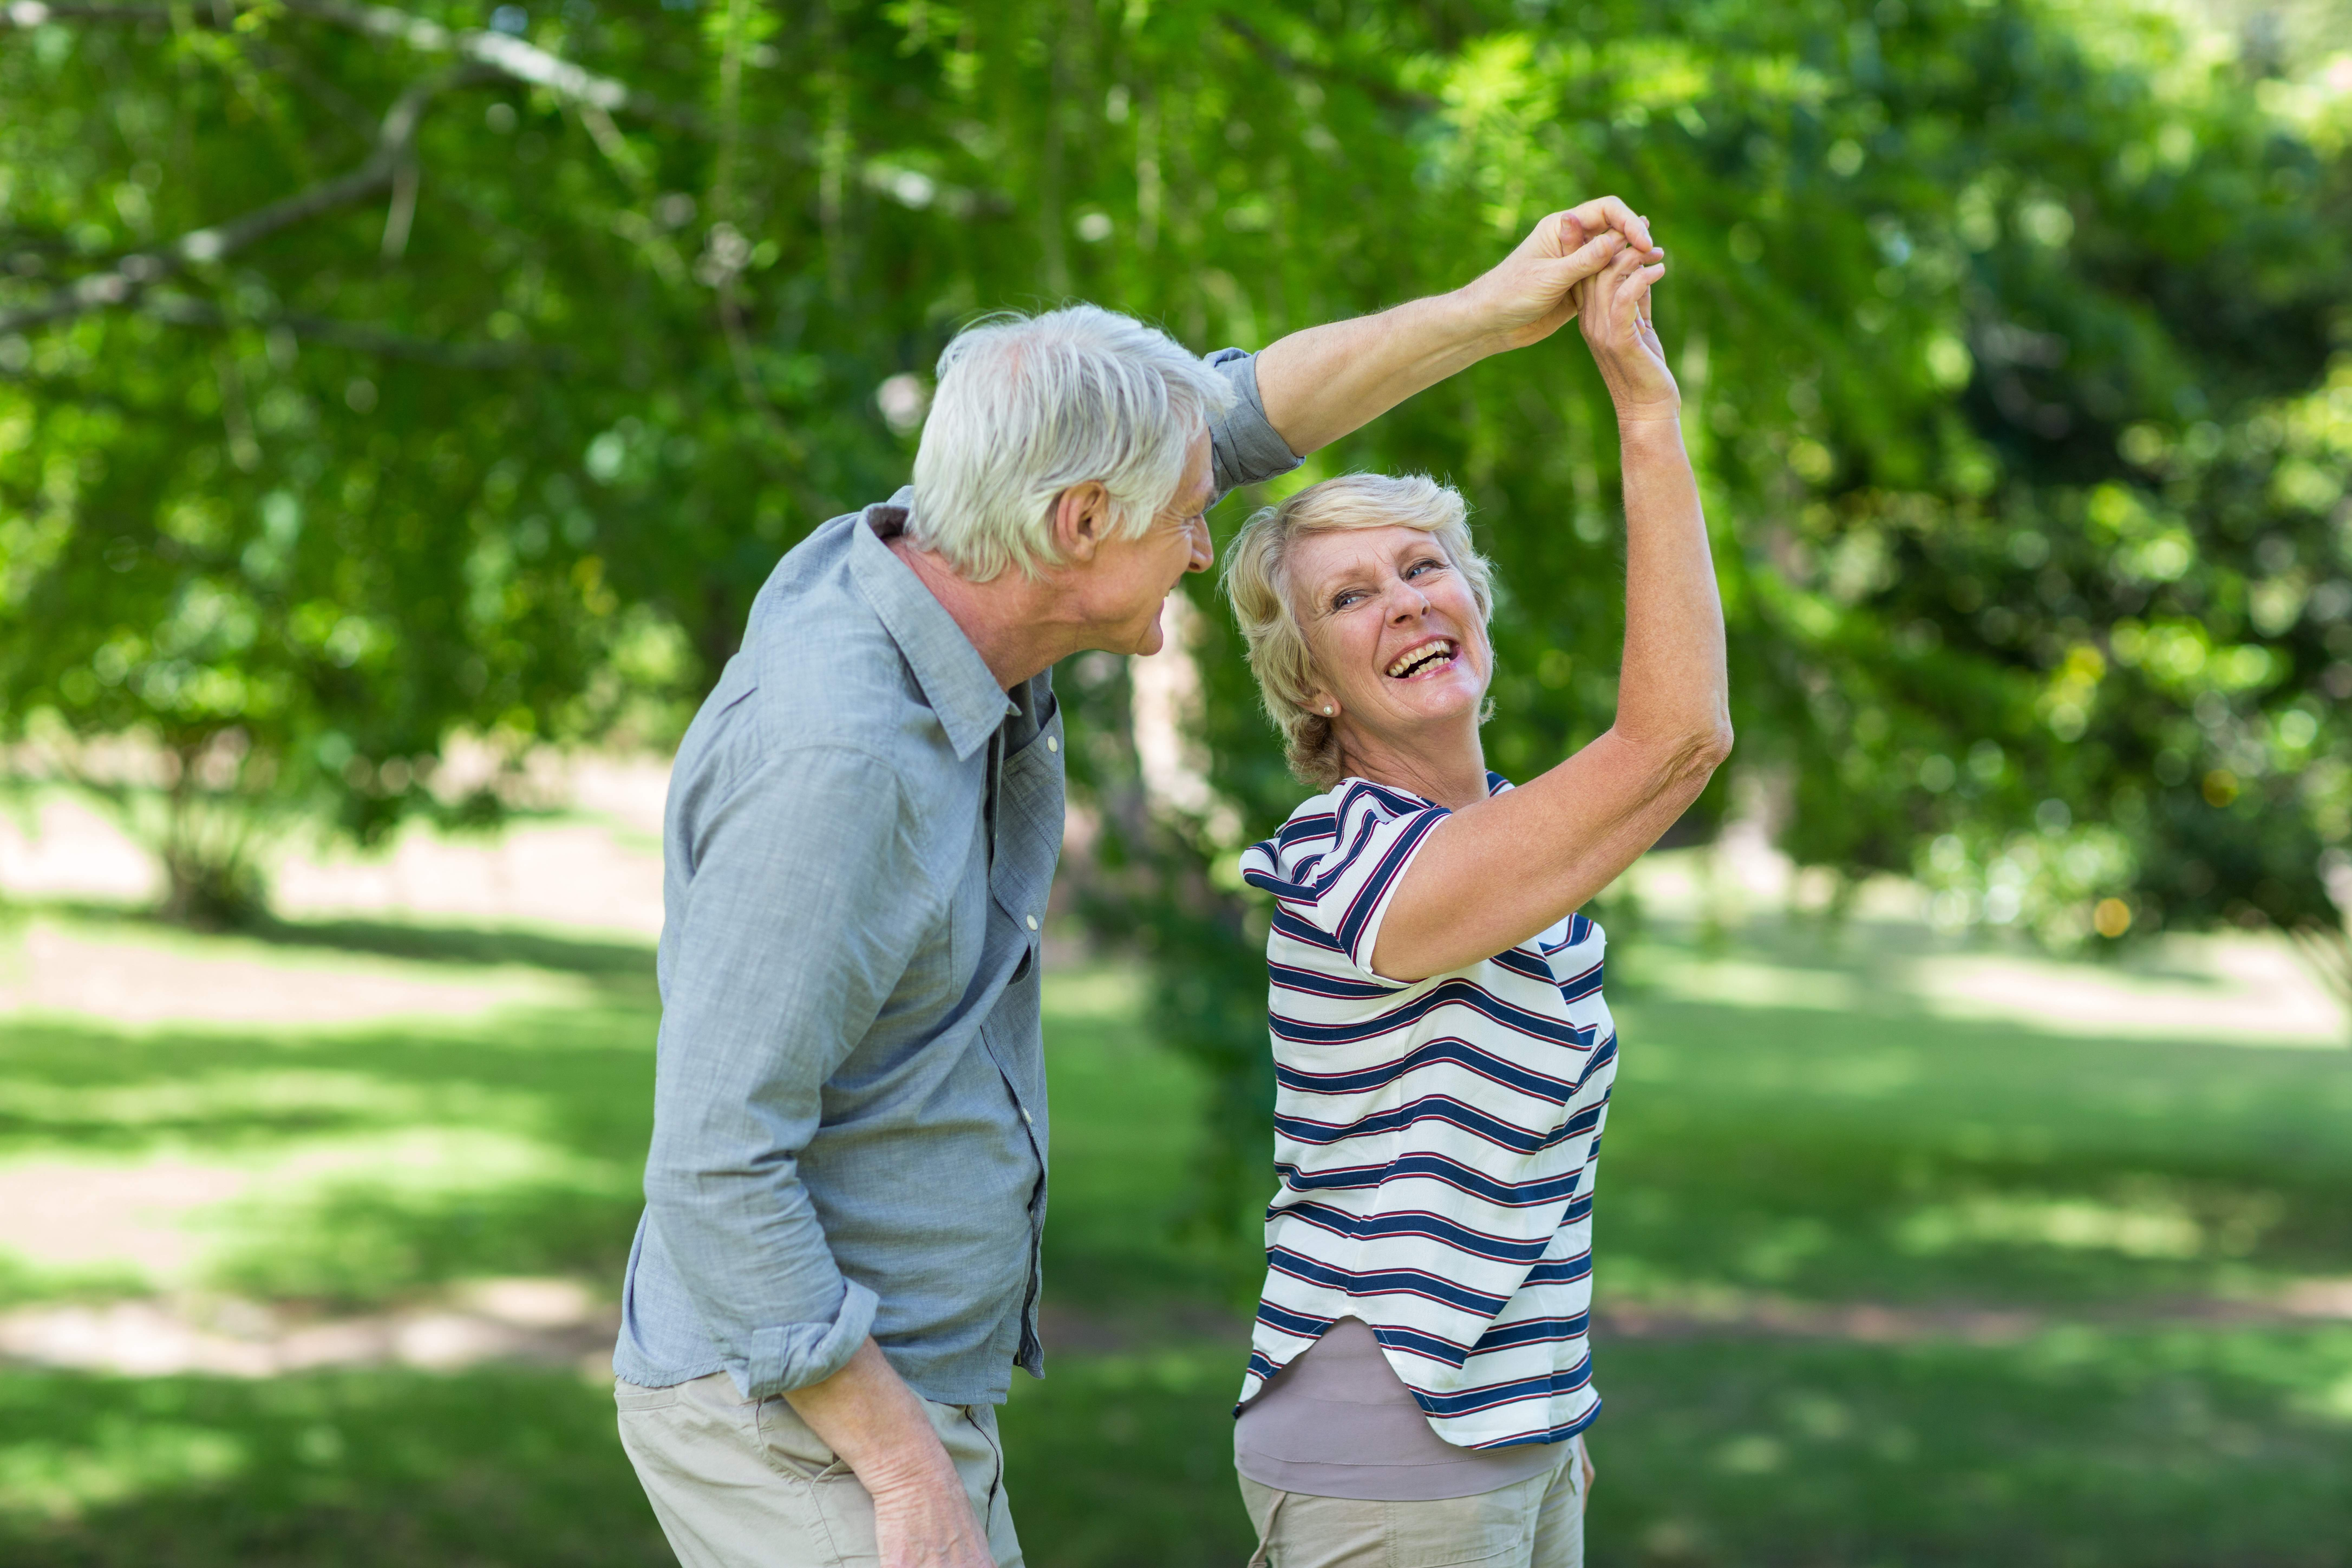 Senior couple smiling and dancing together